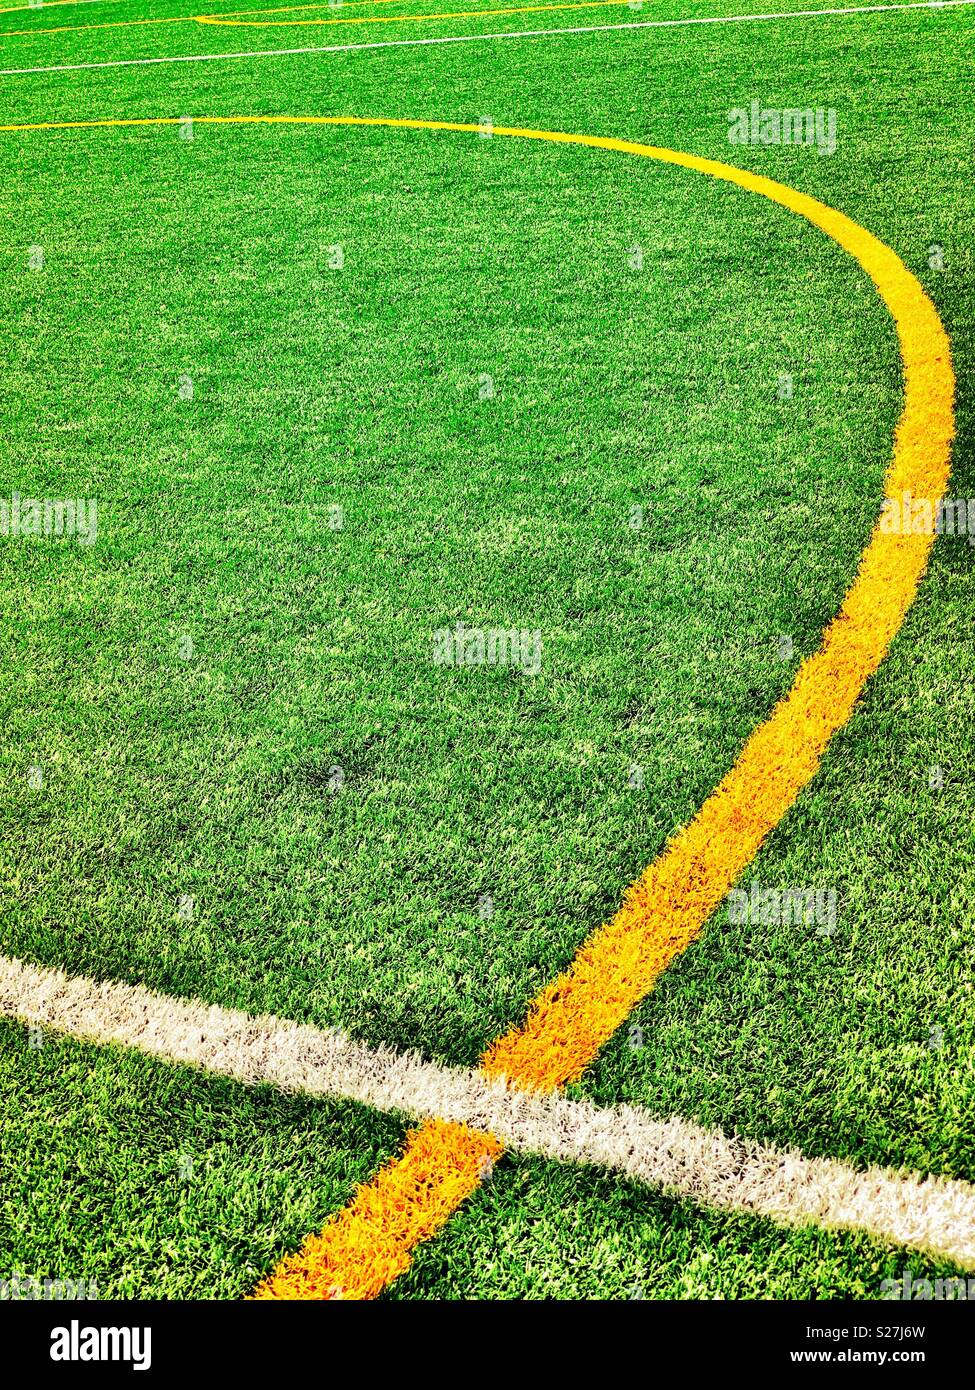 Soccer white and yellow field pitch demarcation lines, artificial turf, center circle, halfway line - Stock Image